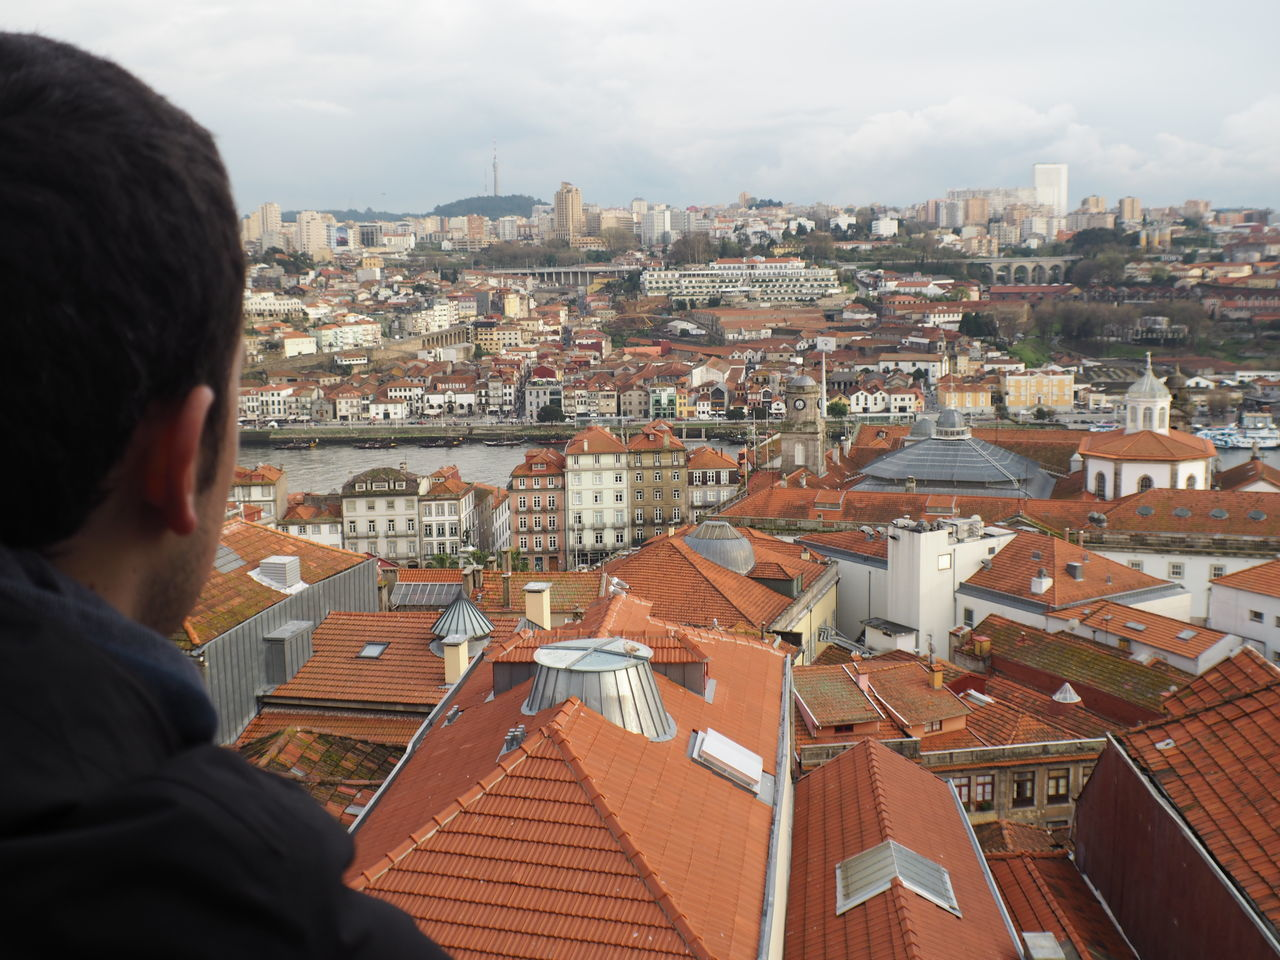 Architecture City Cityscape Exploring House Porto Portugal Rooftop Sightseeing Town Travel Destinations Vista